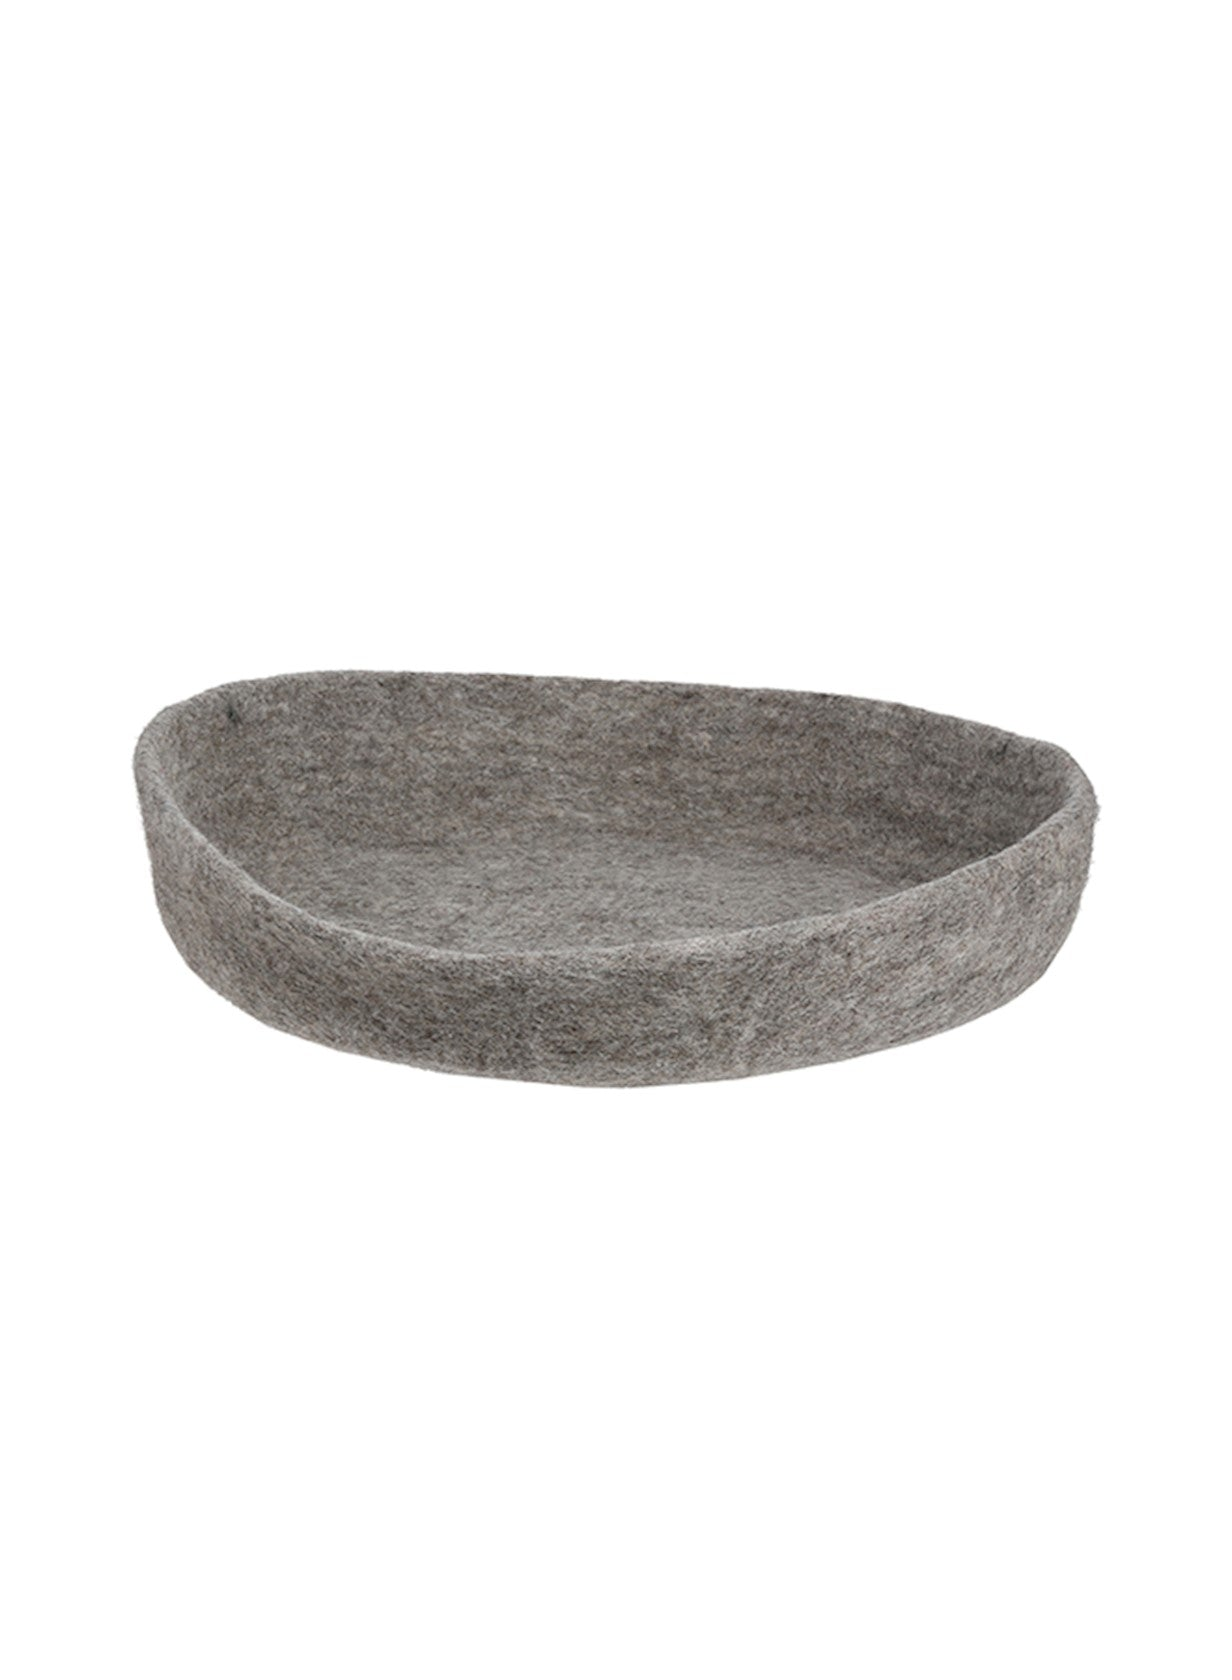 TRAY 'FELT' - Trays - SCAPA HOME - SCAPA HOME OFFICIAL